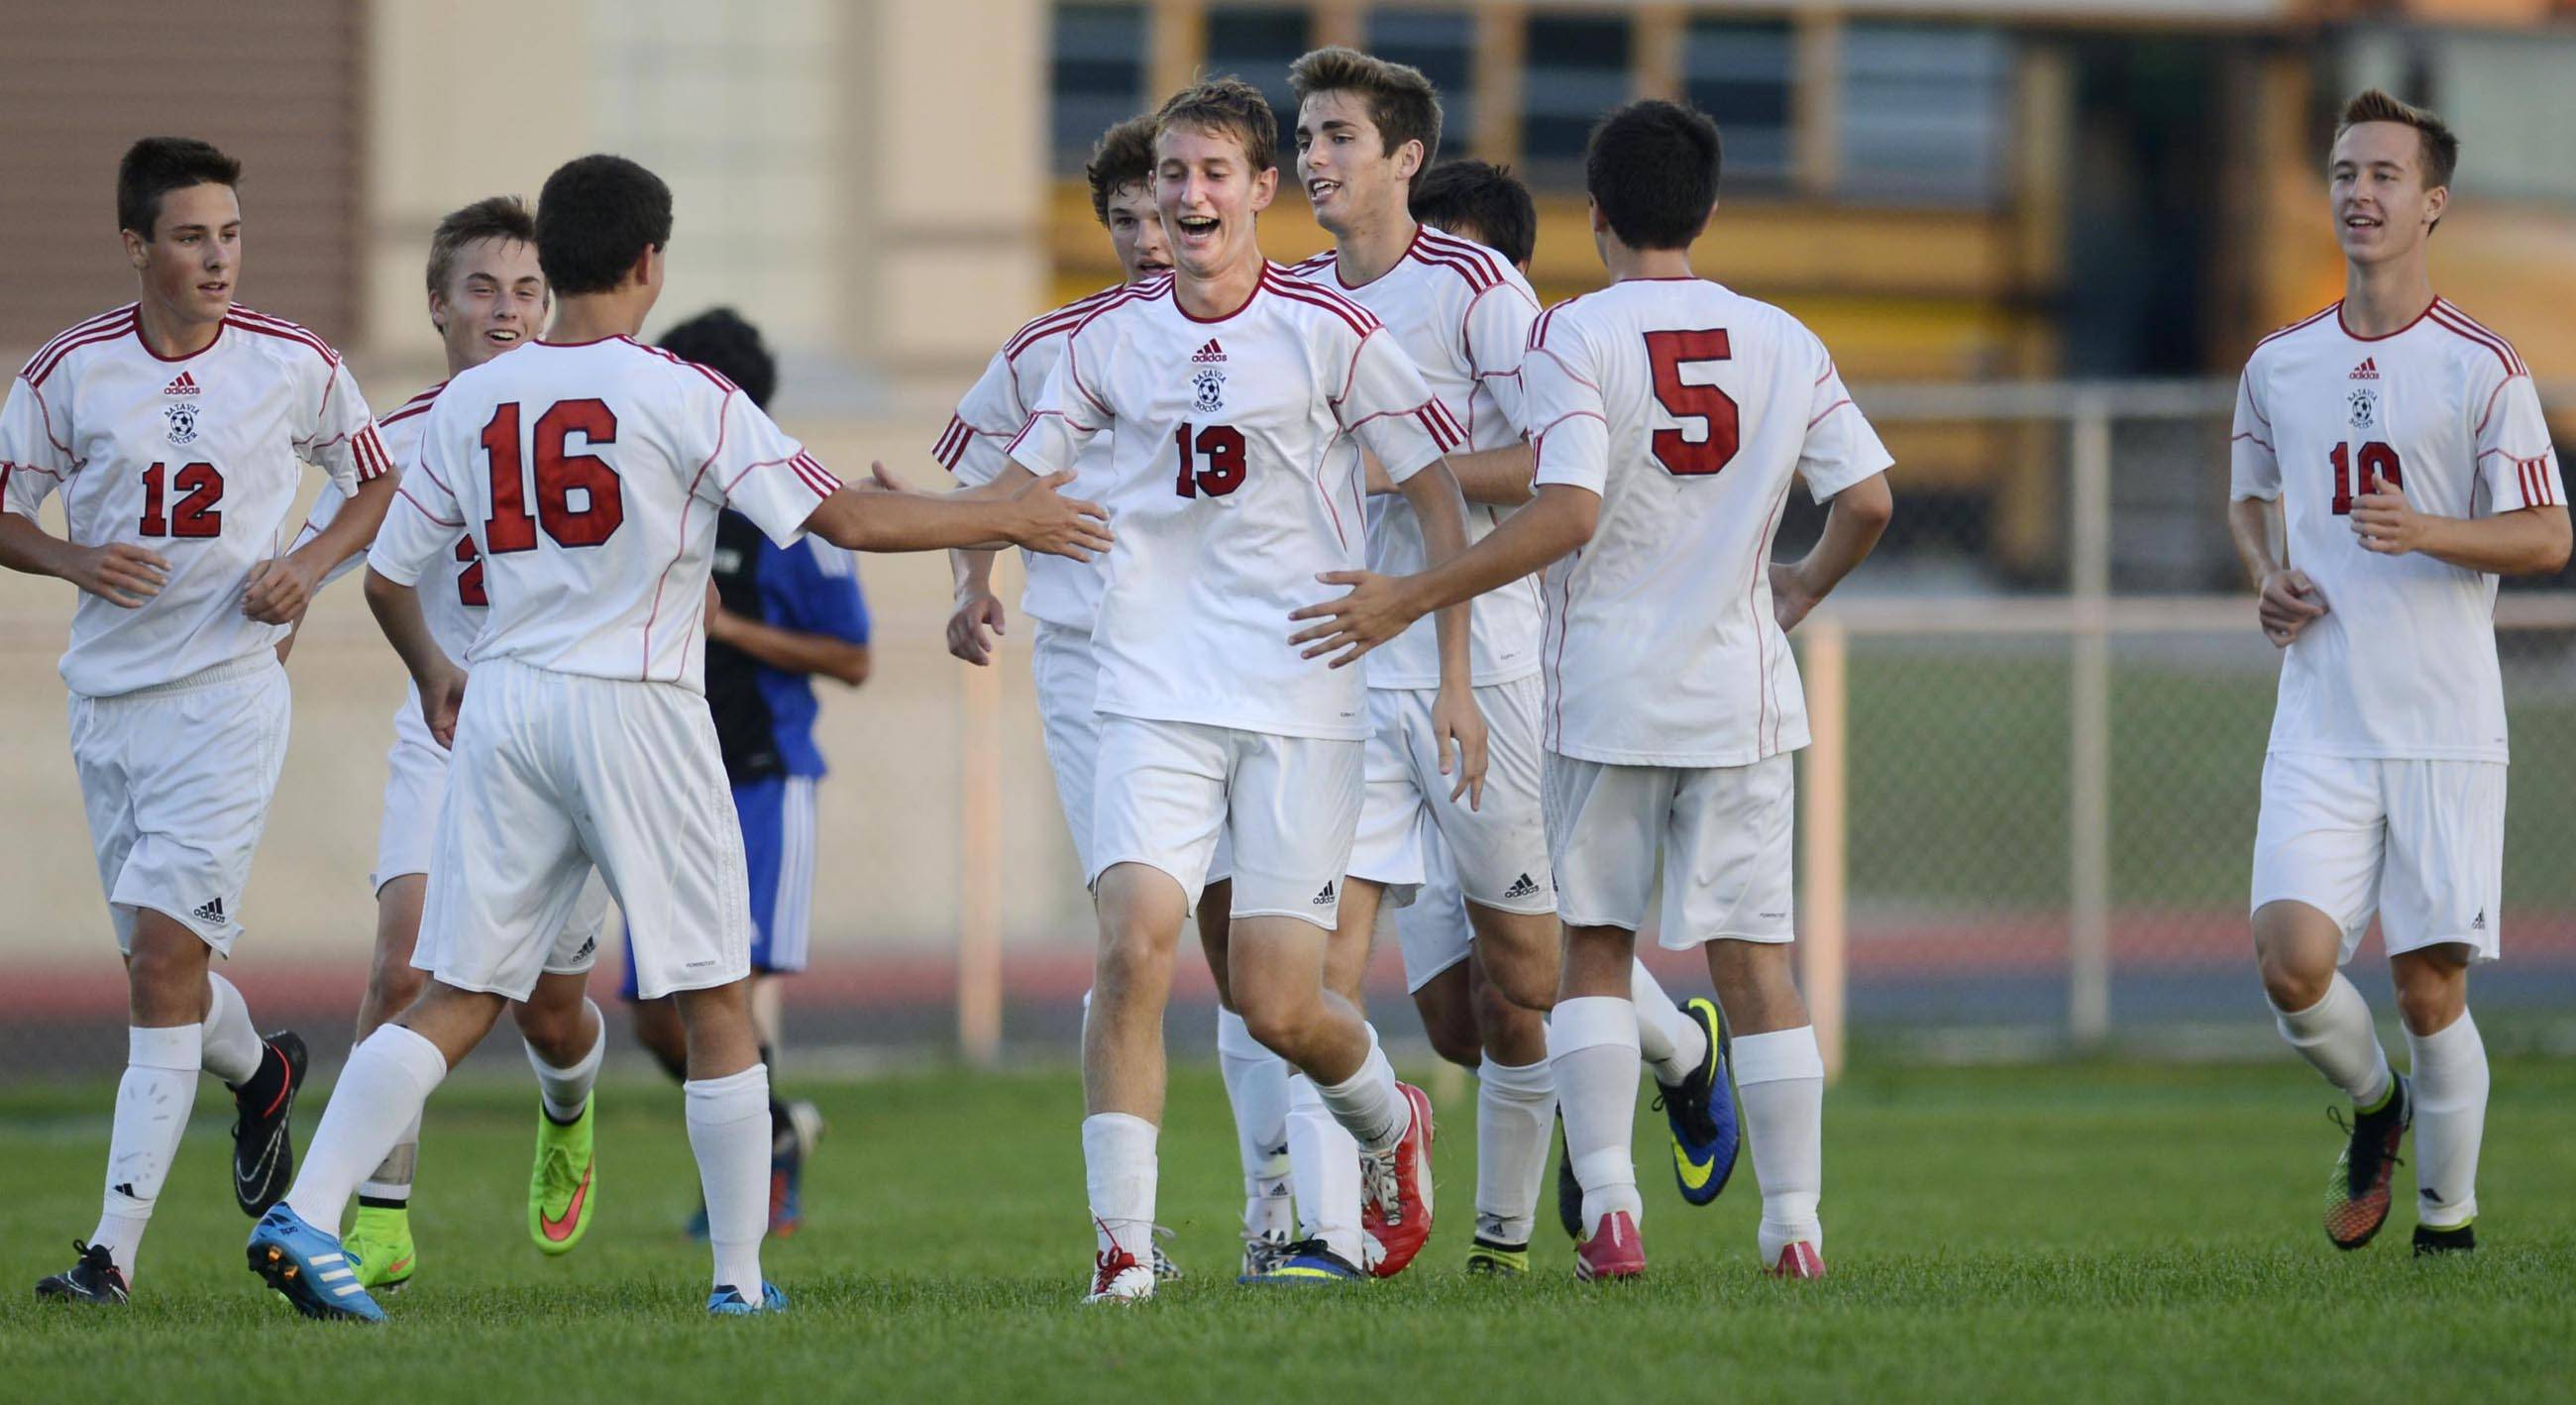 Batavia's Nick Konopacki is surrounded by teammates after his first half goal against Larkin Thursday in Batavia.